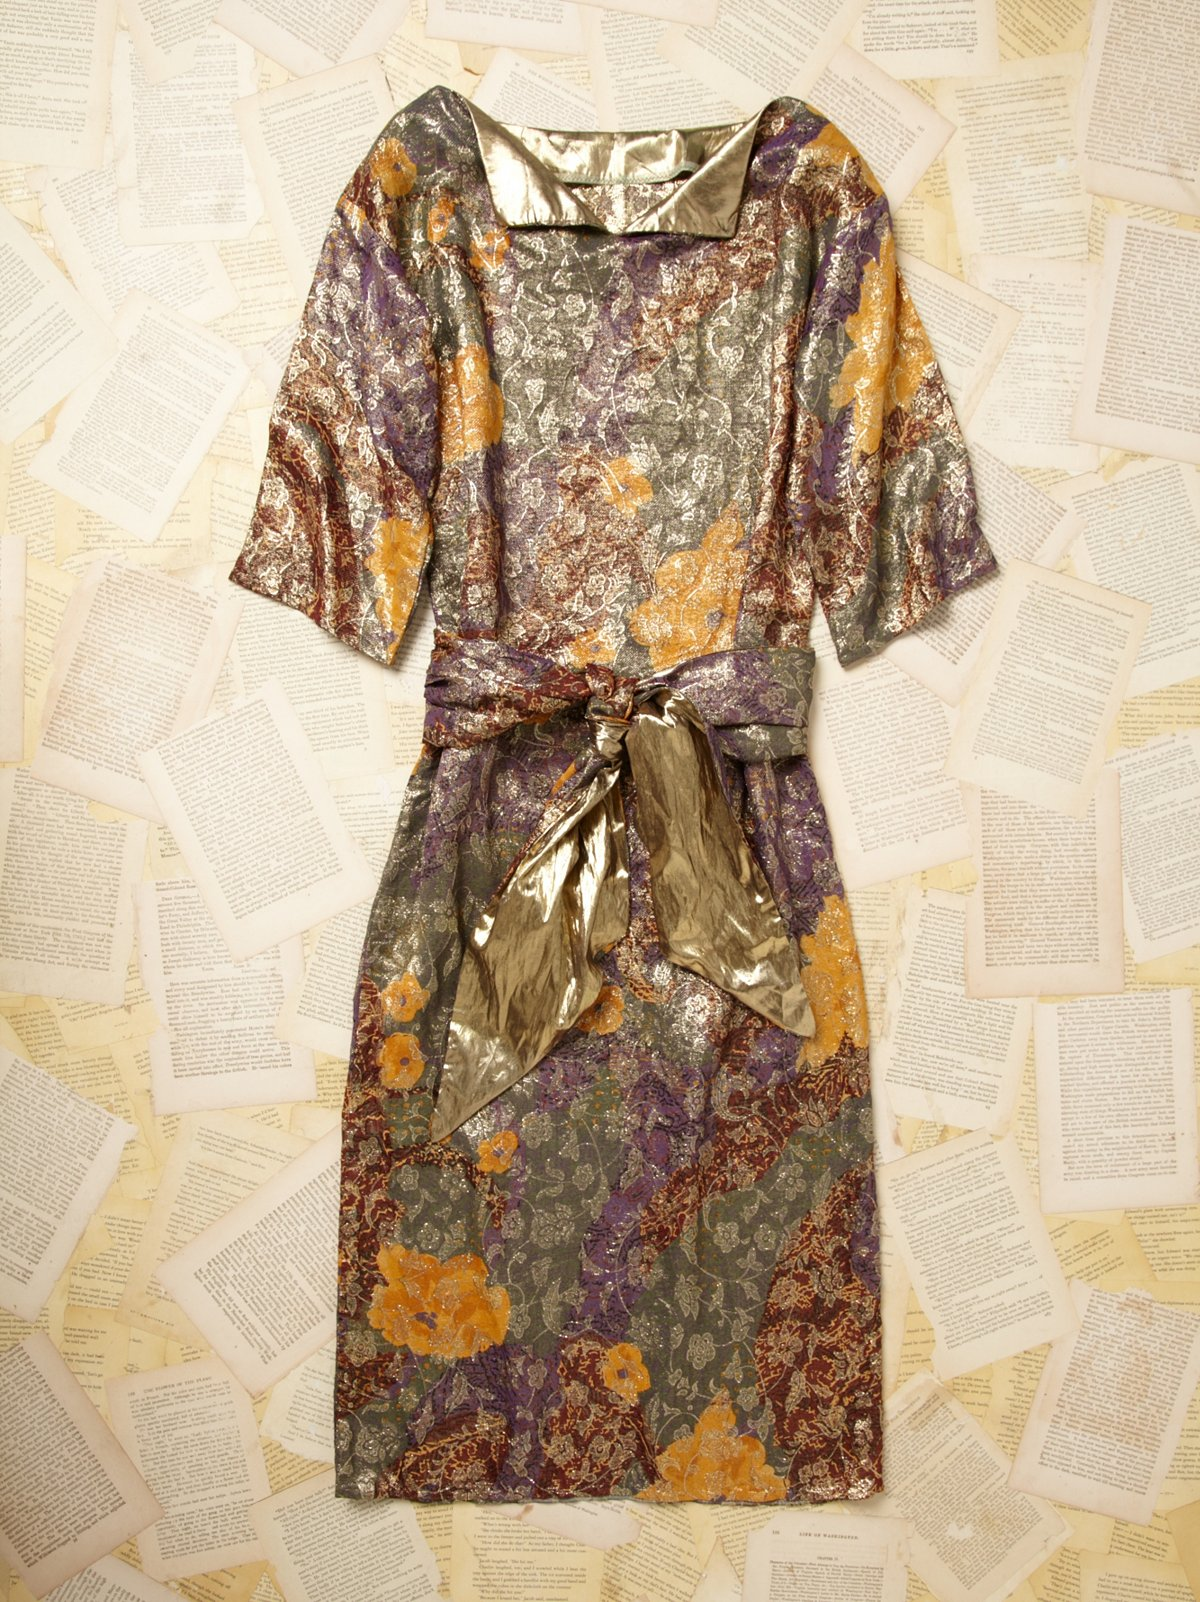 Vintage 1960s Metallic Jacquard Print Dress